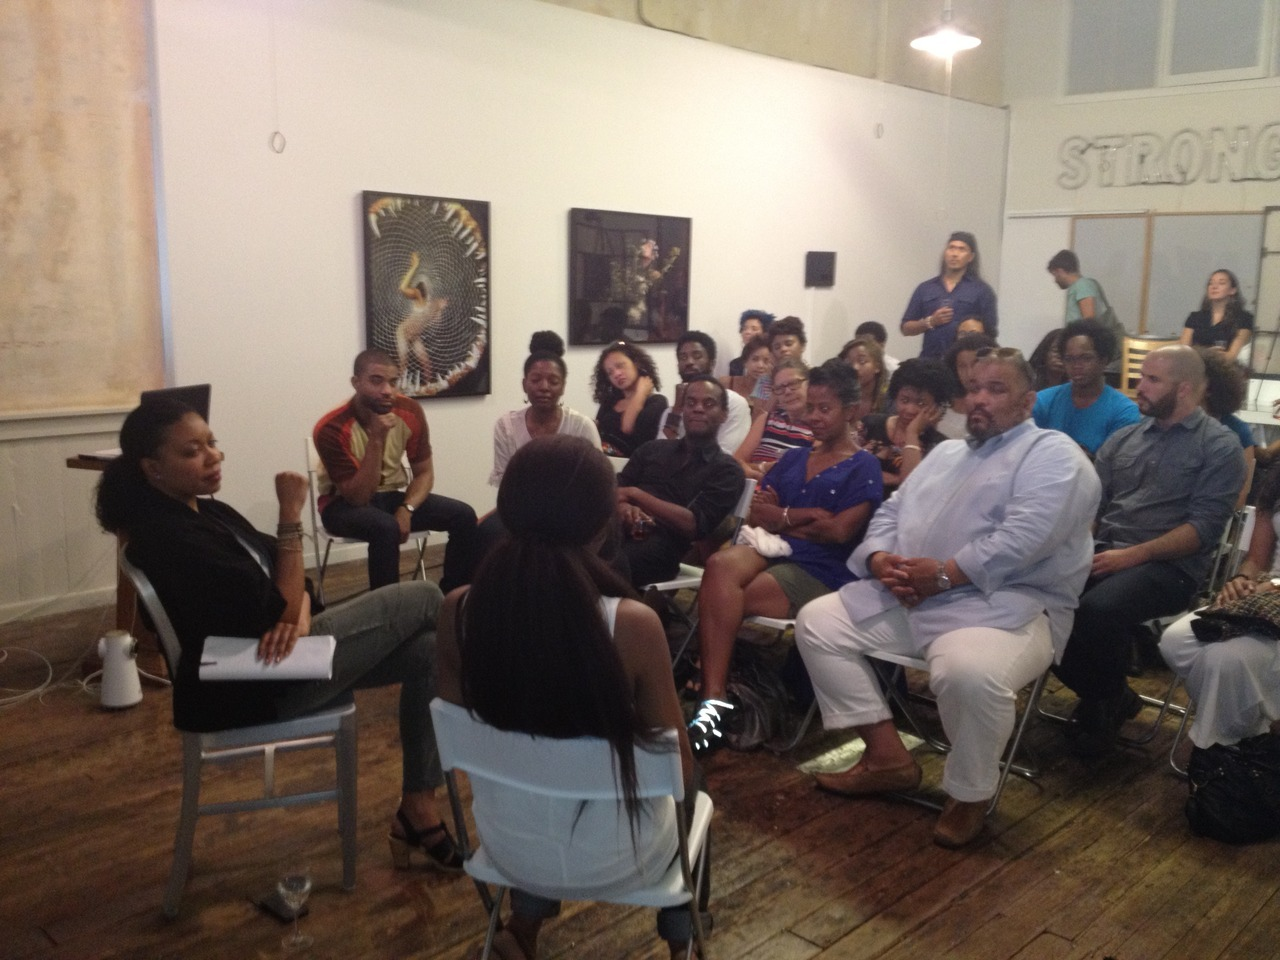 blackcontemporaryart:  thirdstreaming:  The CritiquesWednesday, June 27, 2012, 7-9pm Guest critic: Adrienne EdwardsParticipating artists: Daniel Bejar and Jessica Anne PeavyOrganizers: Natika Soward and Wardell Milan The Critiques is an ongoing series of informal gatherings that offer emerging artists the opportunity to present their work to an invited guest critic. These open forums provide artists with important critical feedback in a discussion format. Please click here for more information  kim (a moderator) is in this one!  can you spot clifford owens, torkwase dyson, and dawoud bey in the front row?!